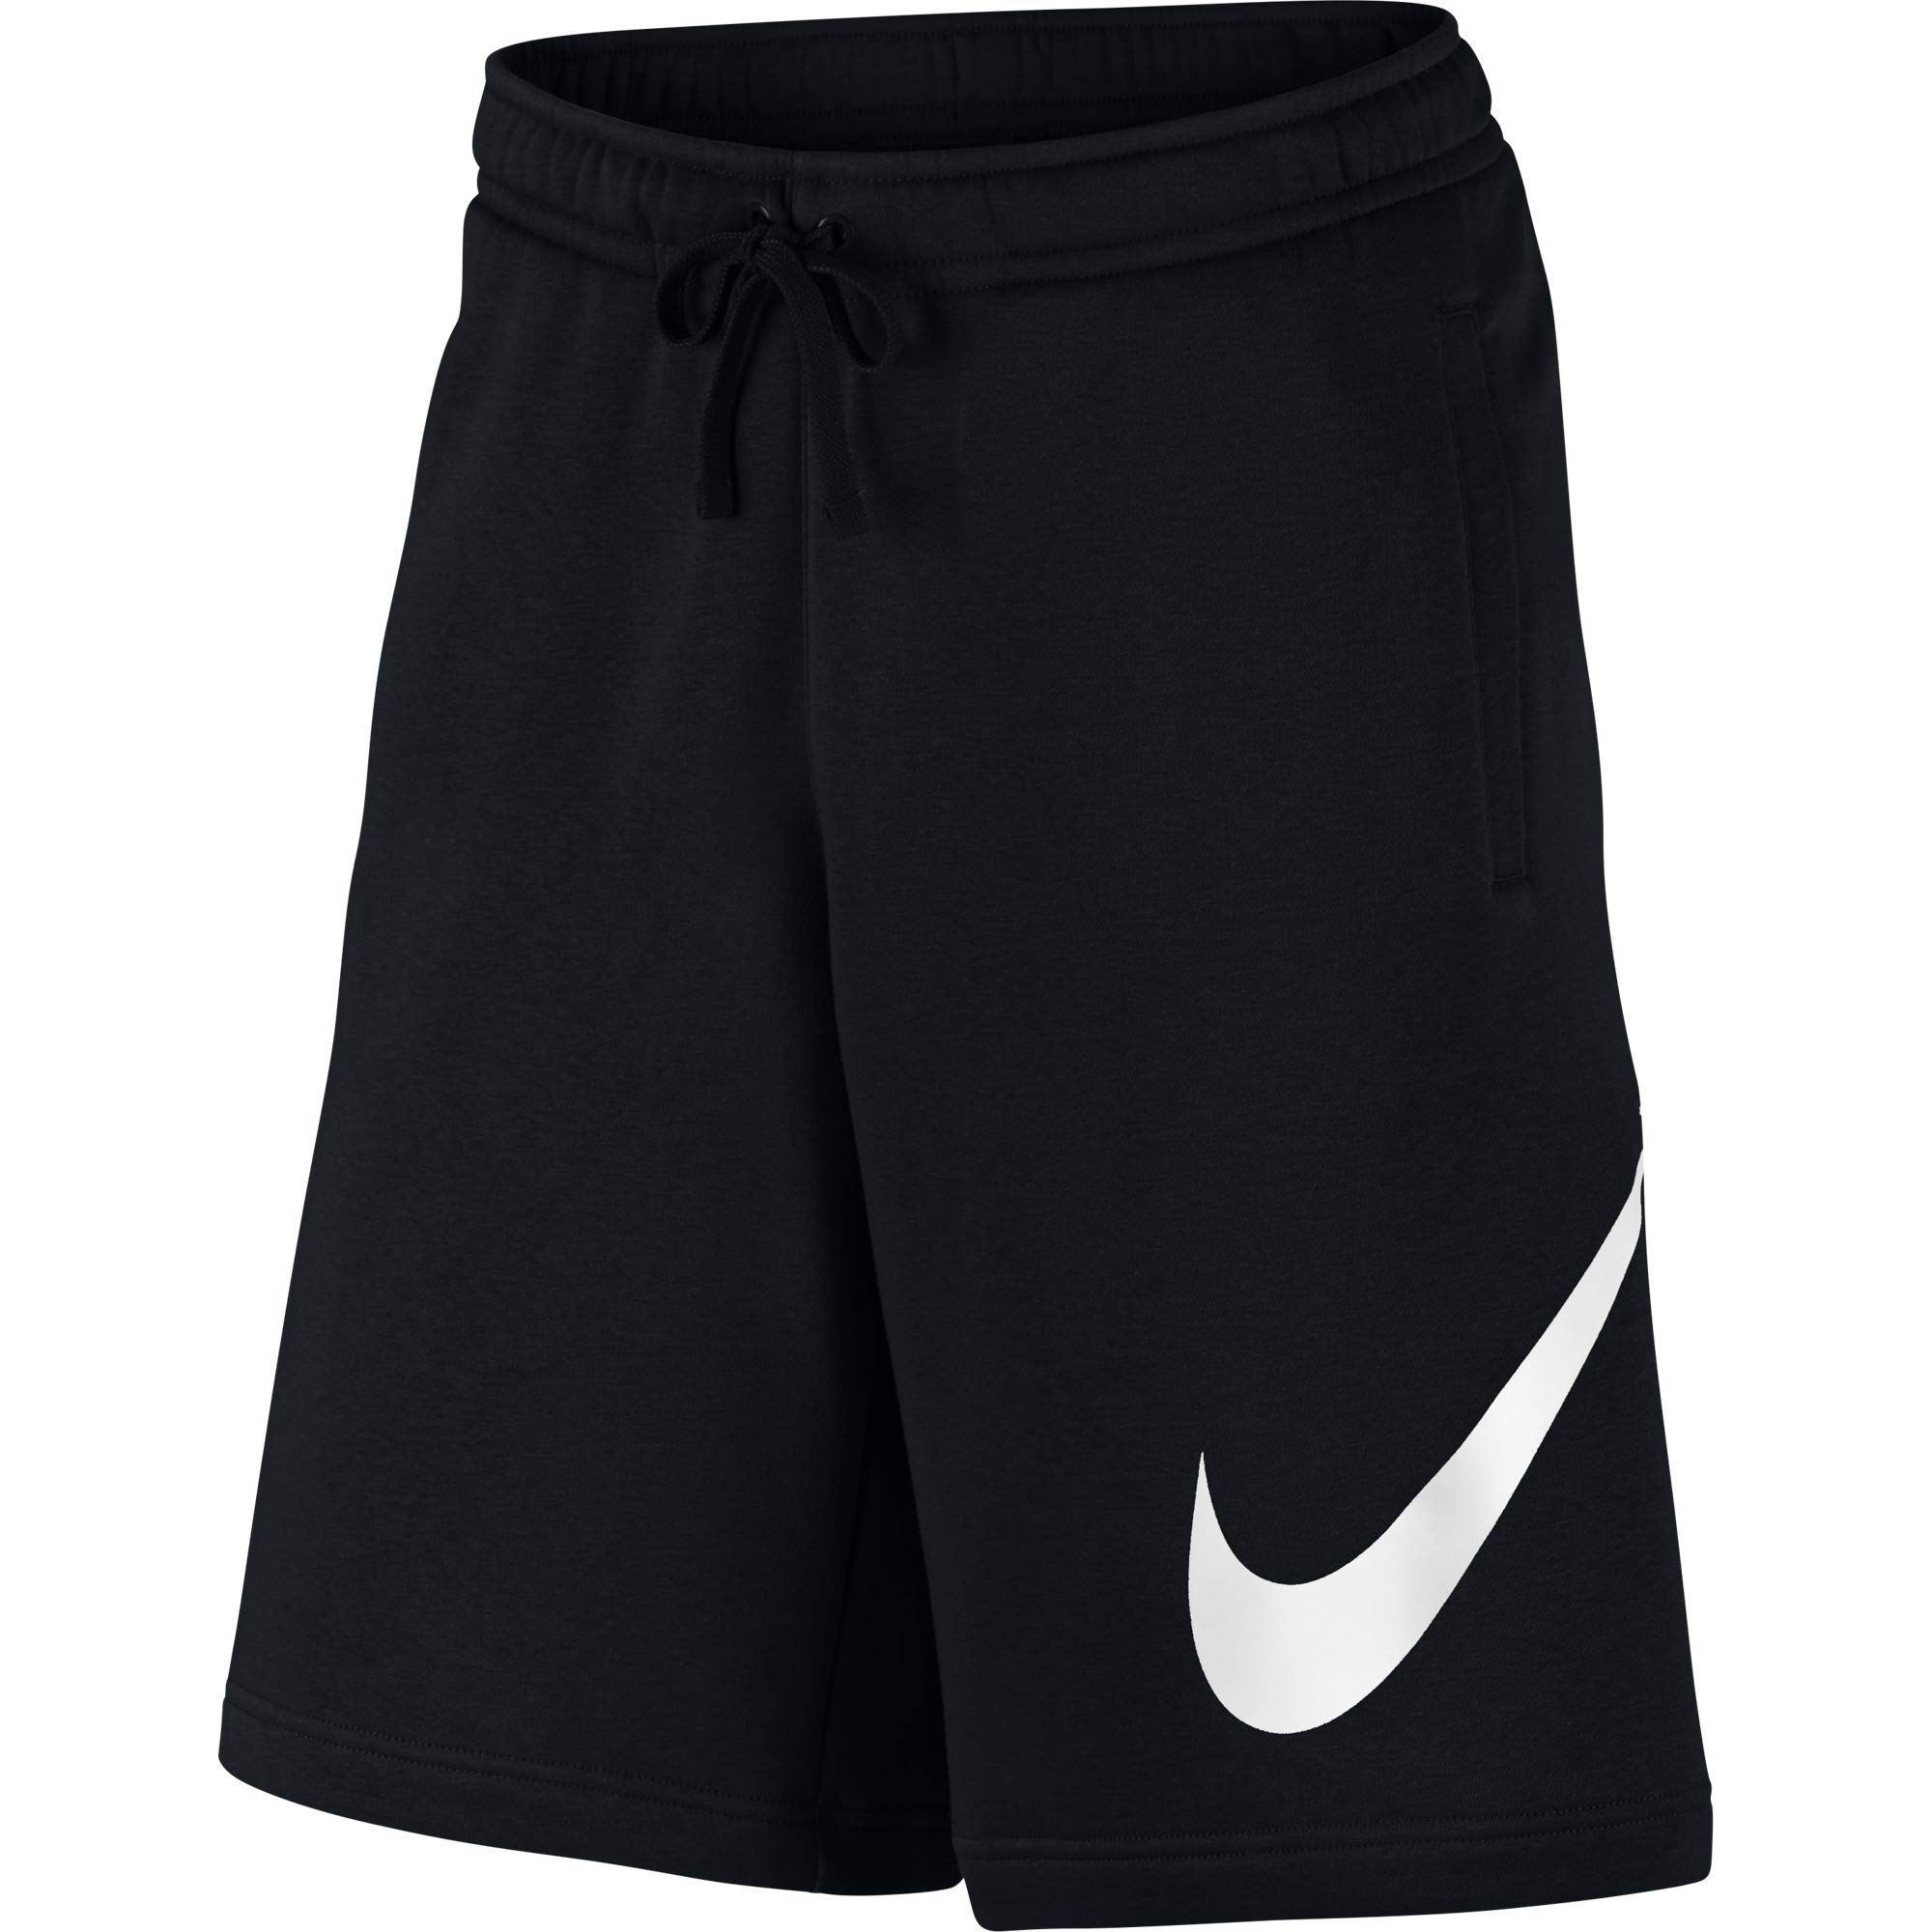 Nike Men's Sportwear Club Shorts, Black/White, X-Large by Nike